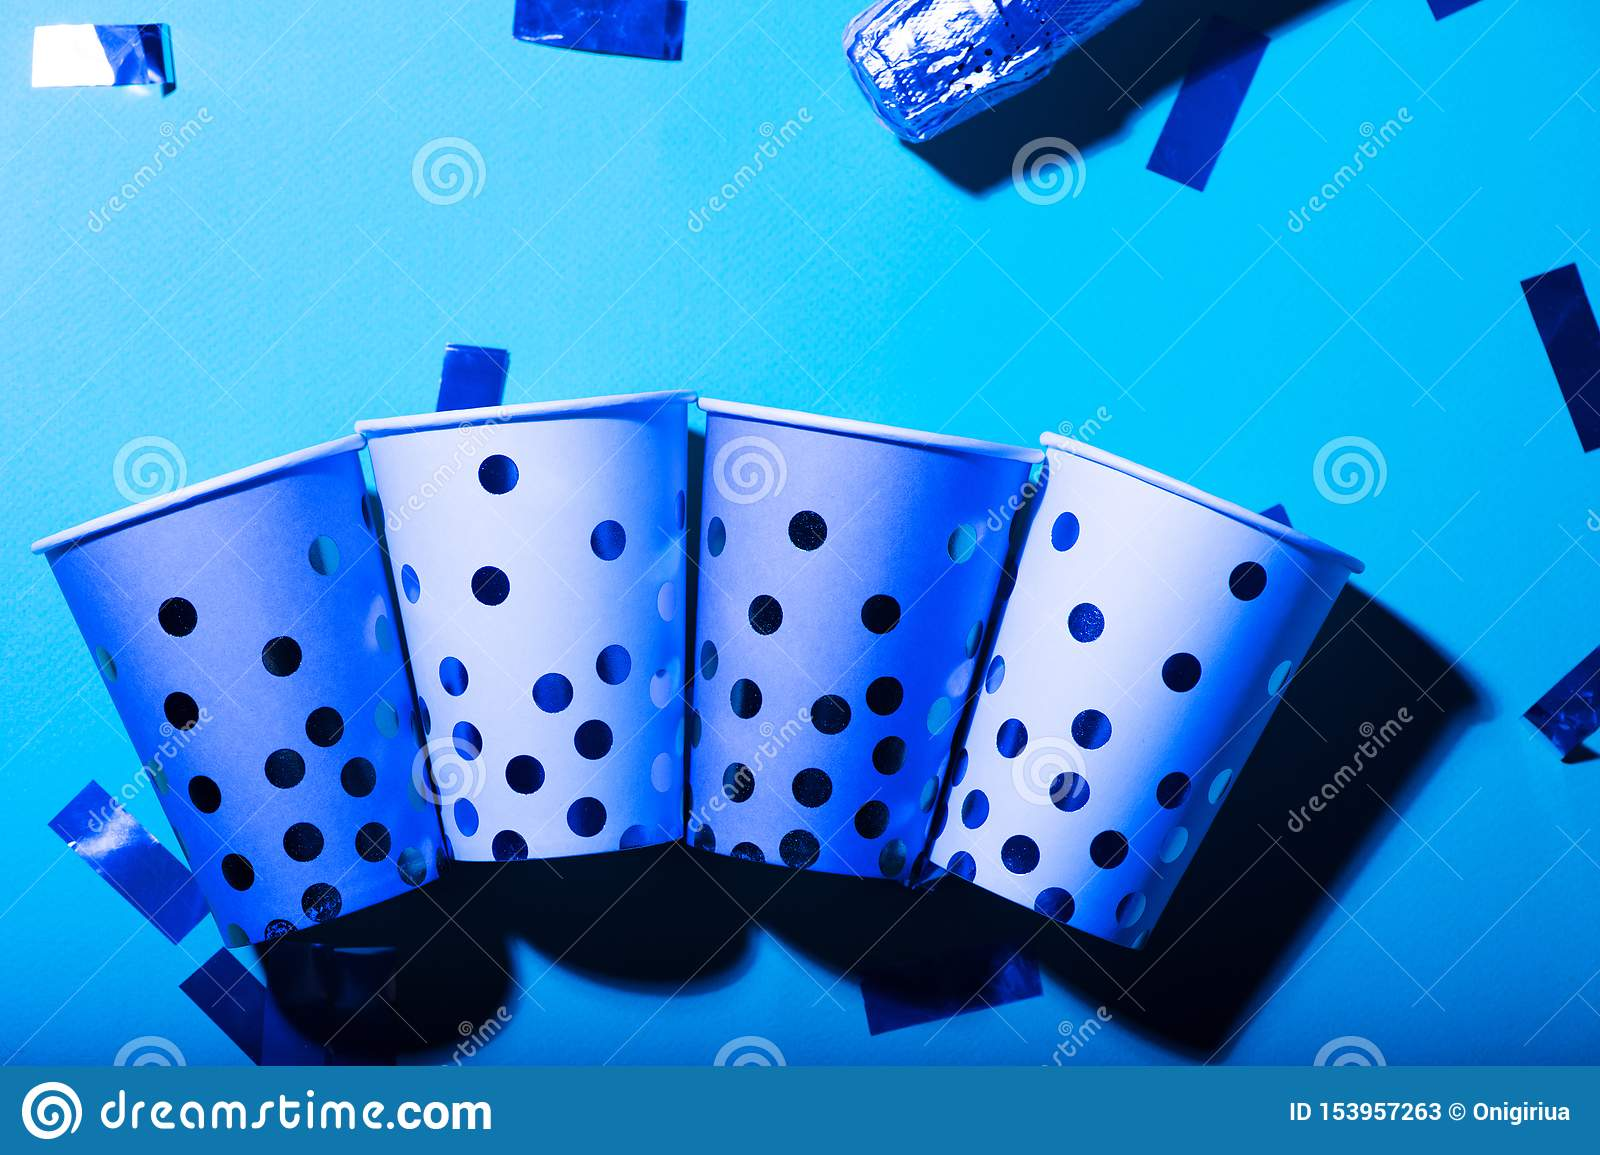 Blue polka dot paper cups and straws in ultraviolet light